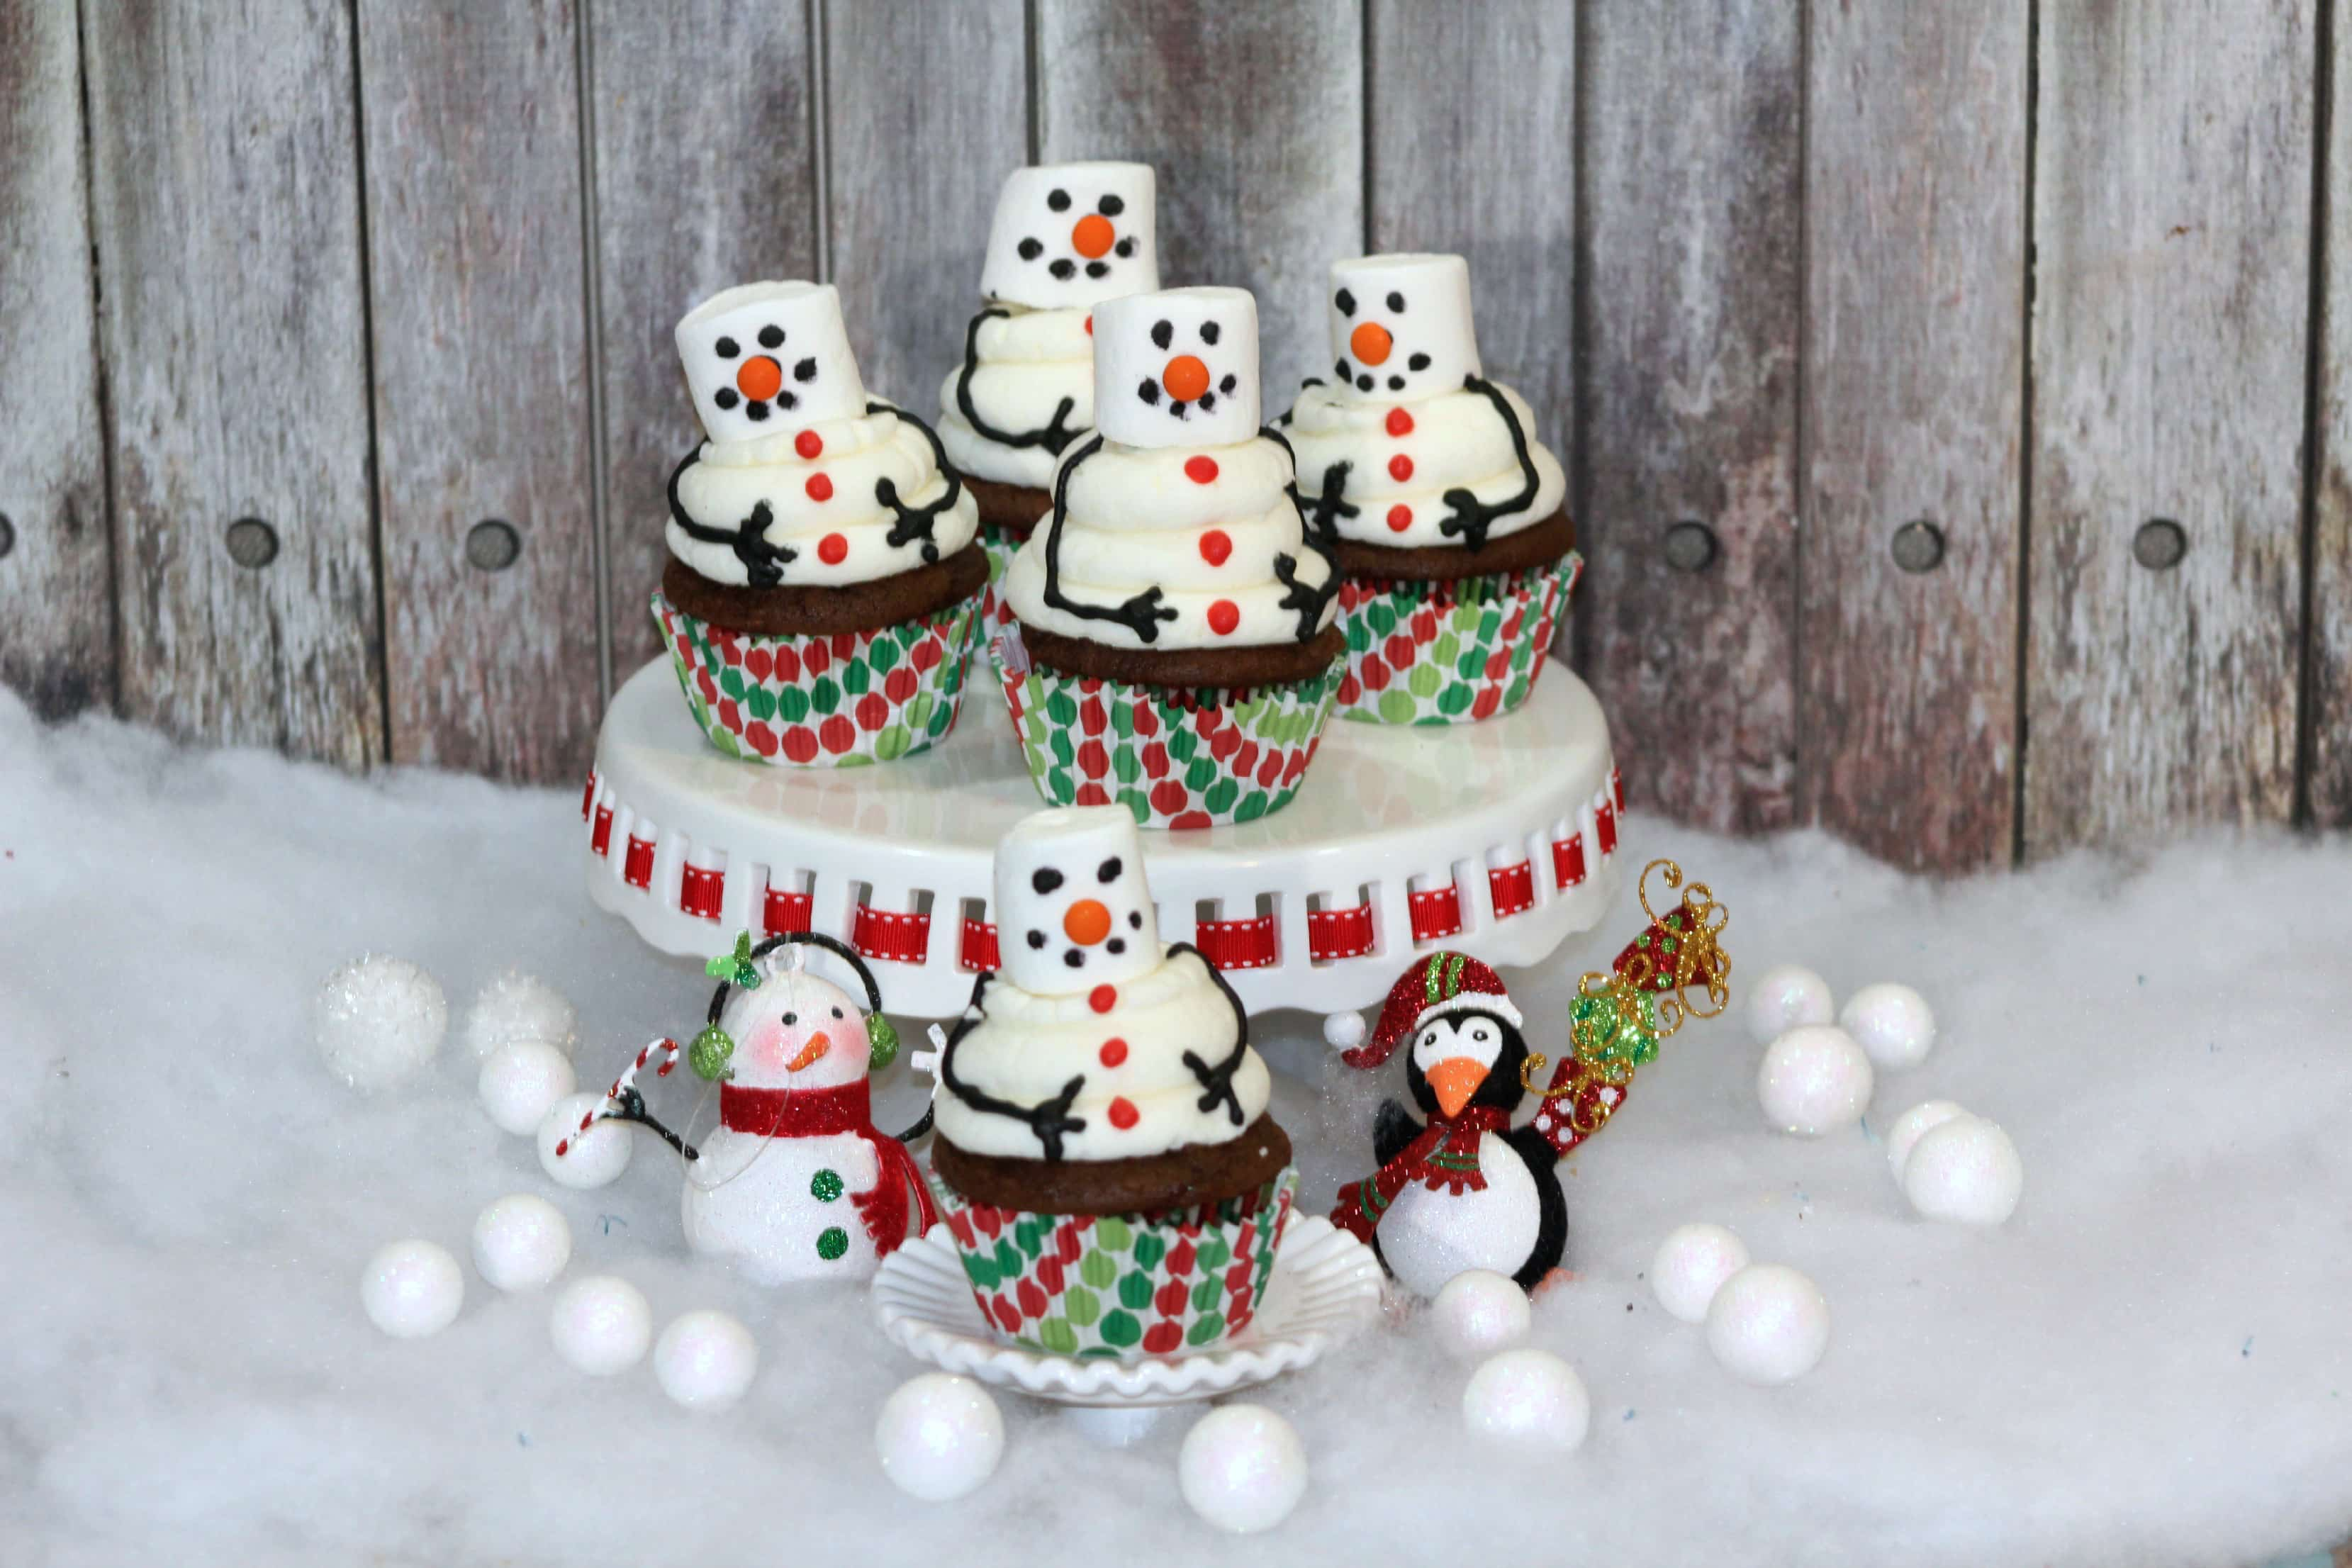 Snowman Cupcakes Recipe With Homemade Icing